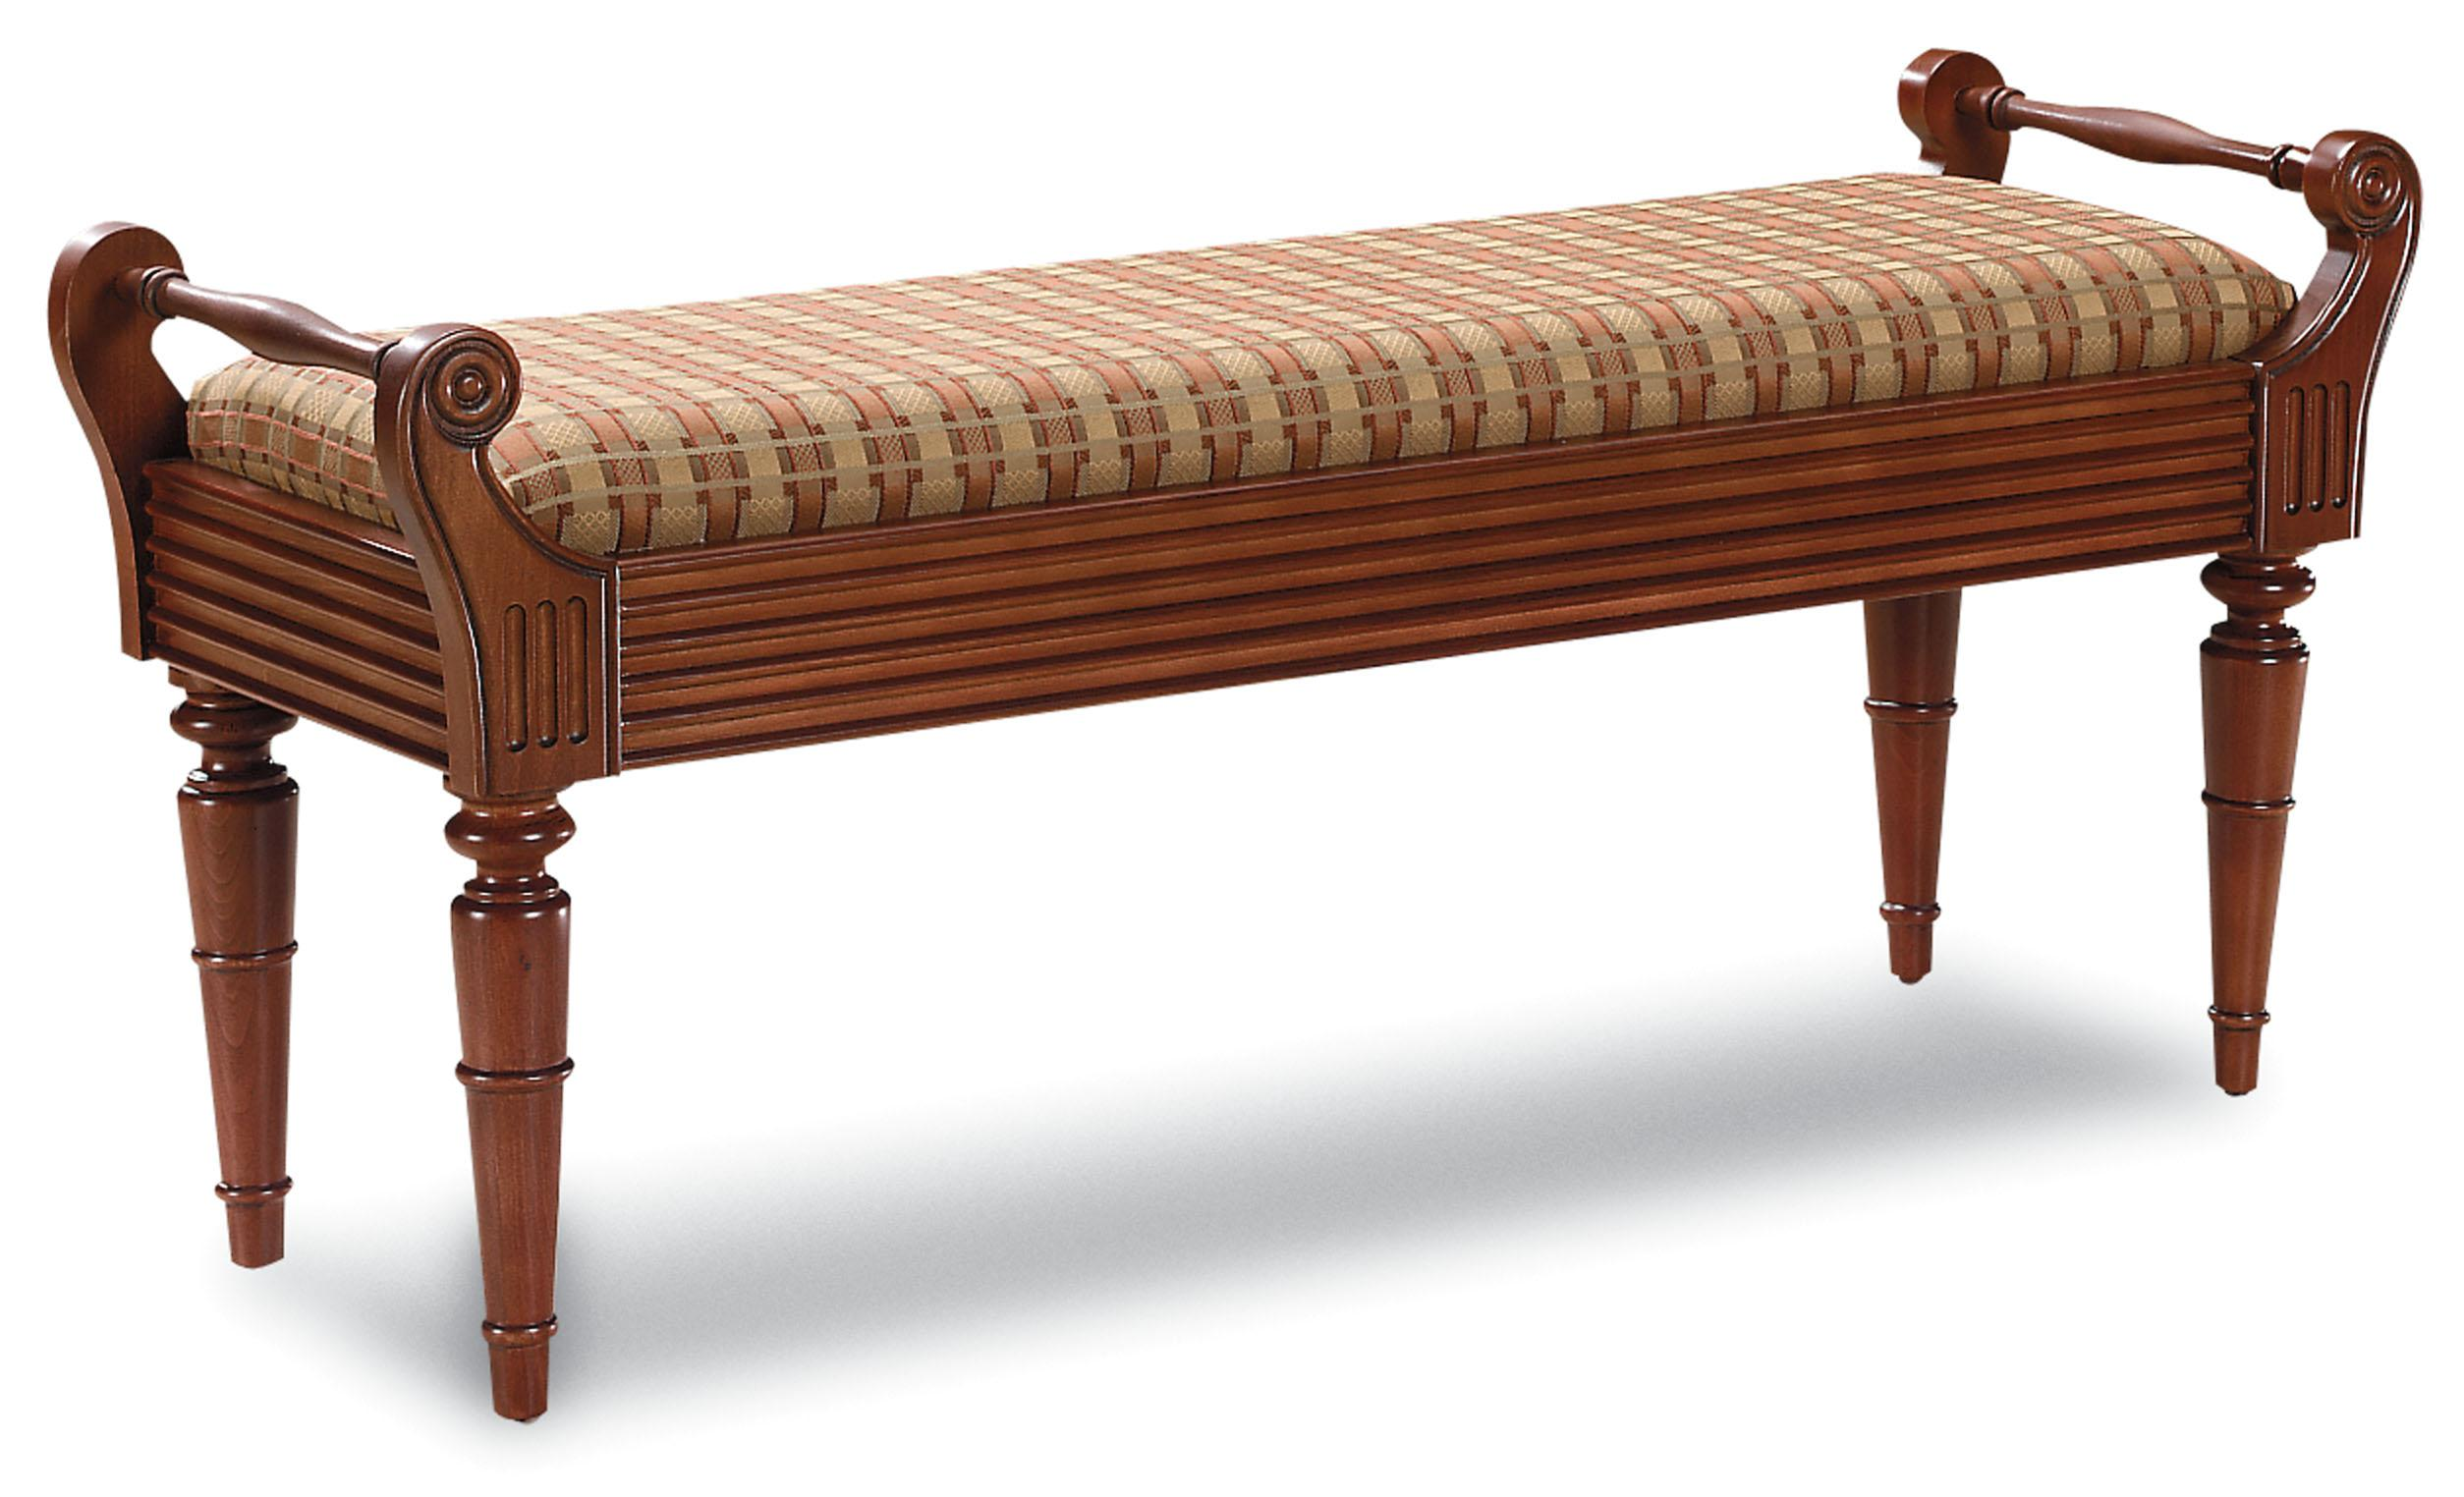 Fairfield Benches Upholstered Bench - Item Number: 1634-10